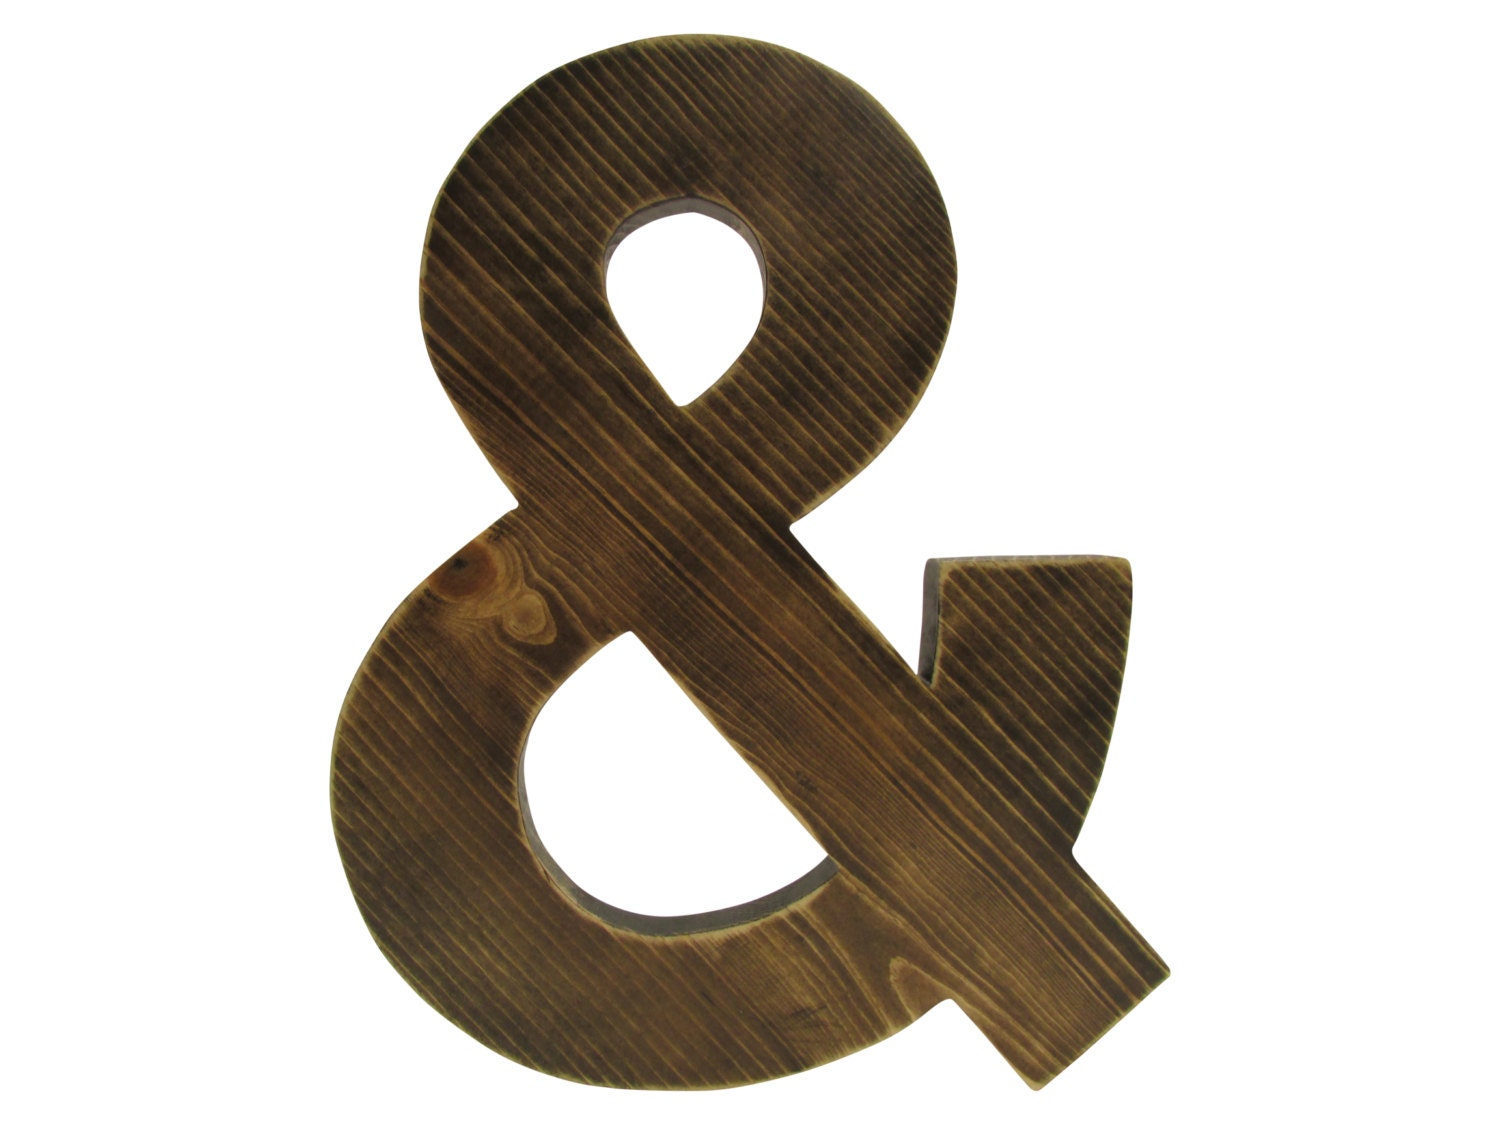 Ampersand rustic wall decor kona brown stainwood sign wall for Ampersand decor